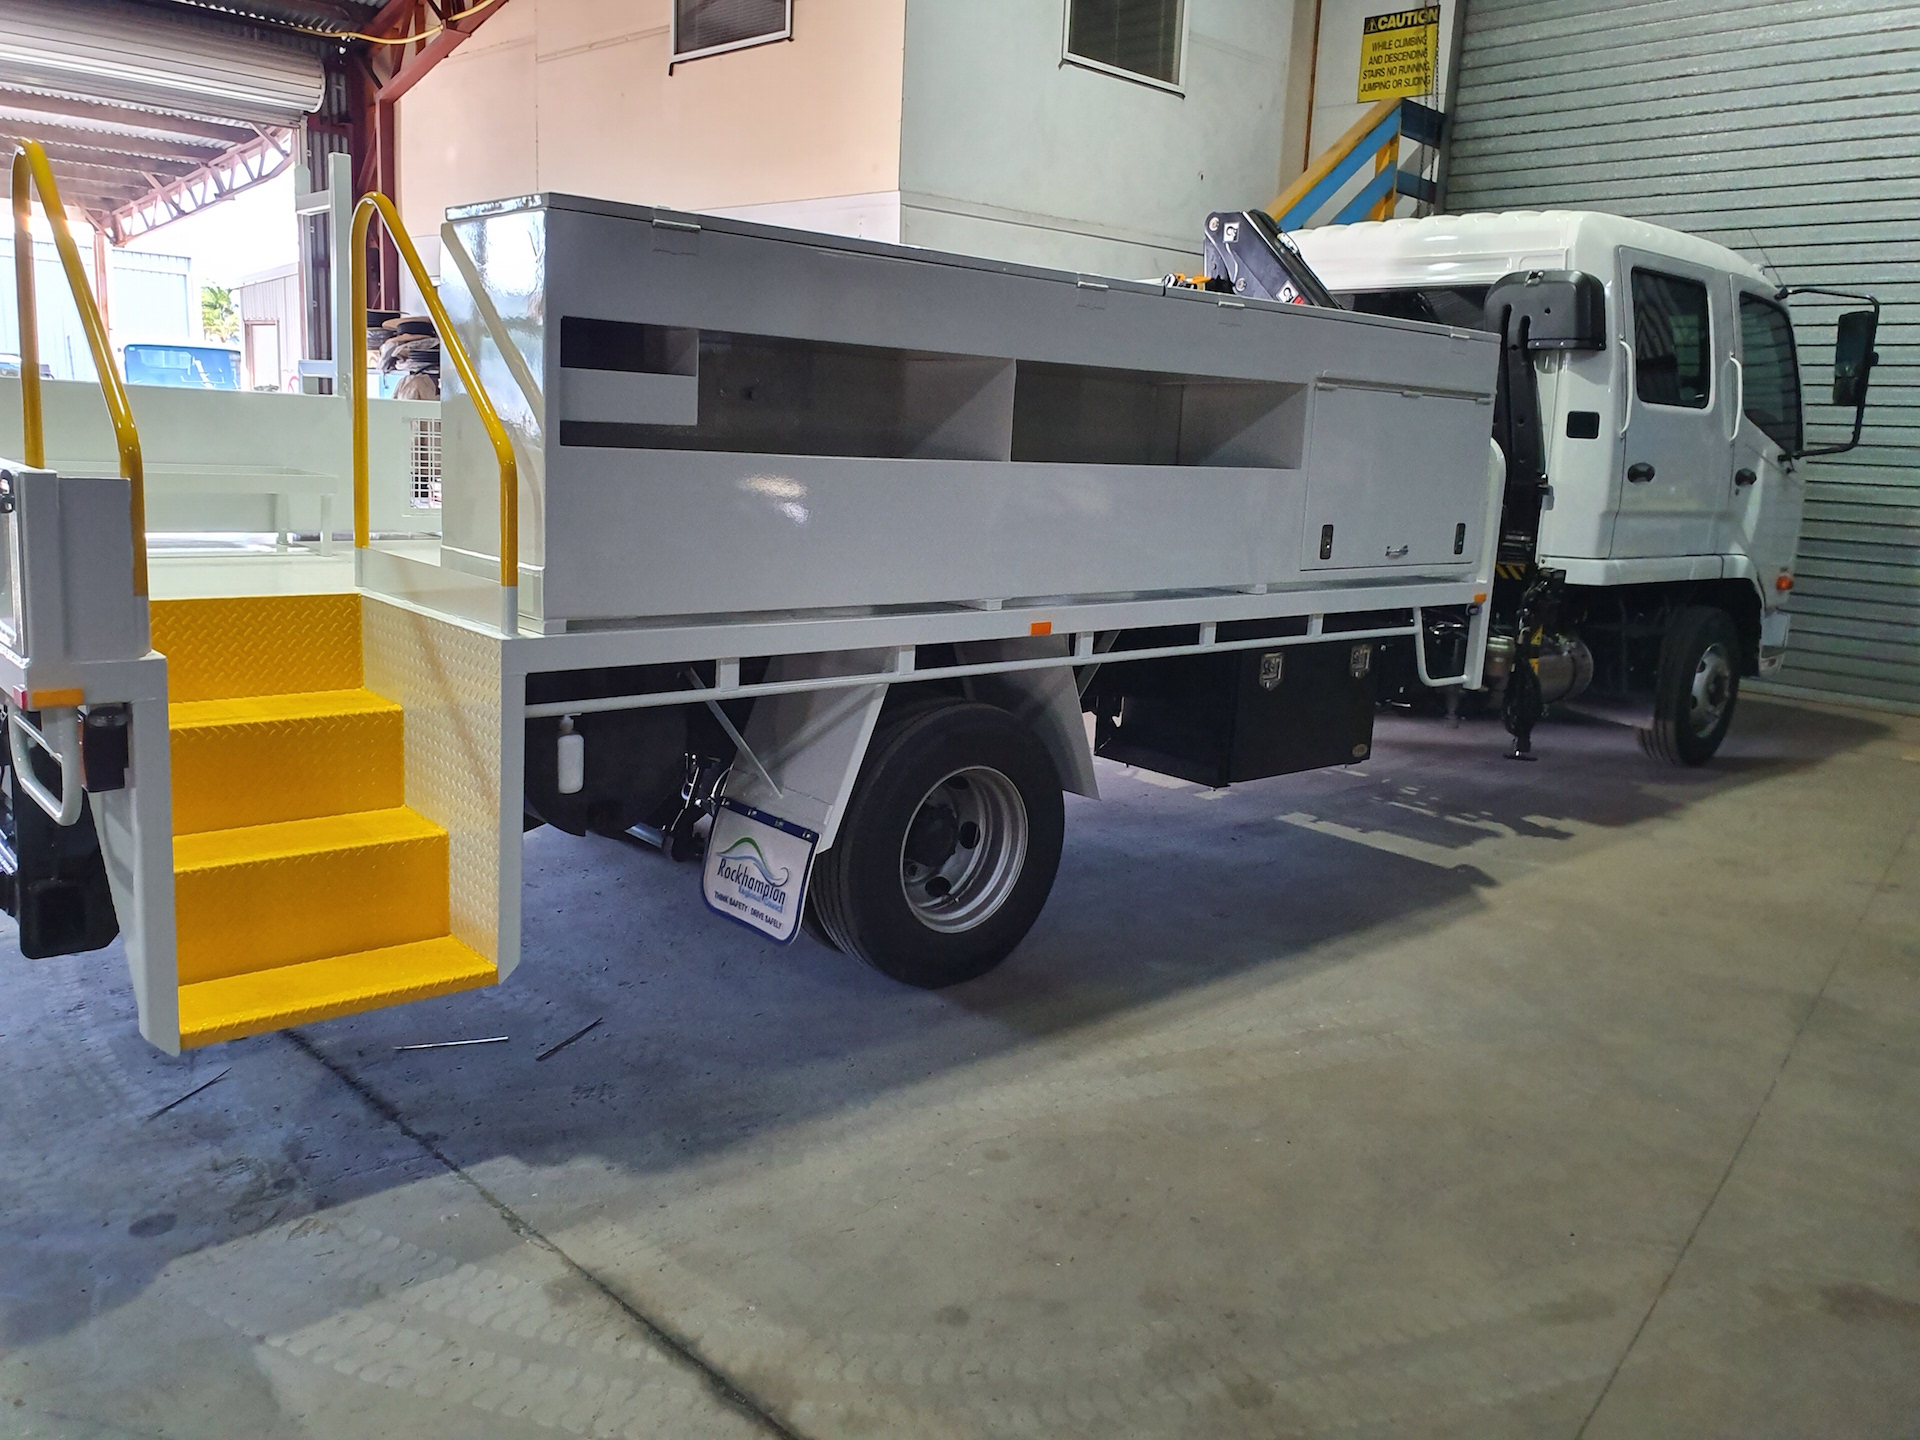 Concreters truck: Tray body dropside customised to suit toolboxes and storage for Concrete Work HIAB crane fitted